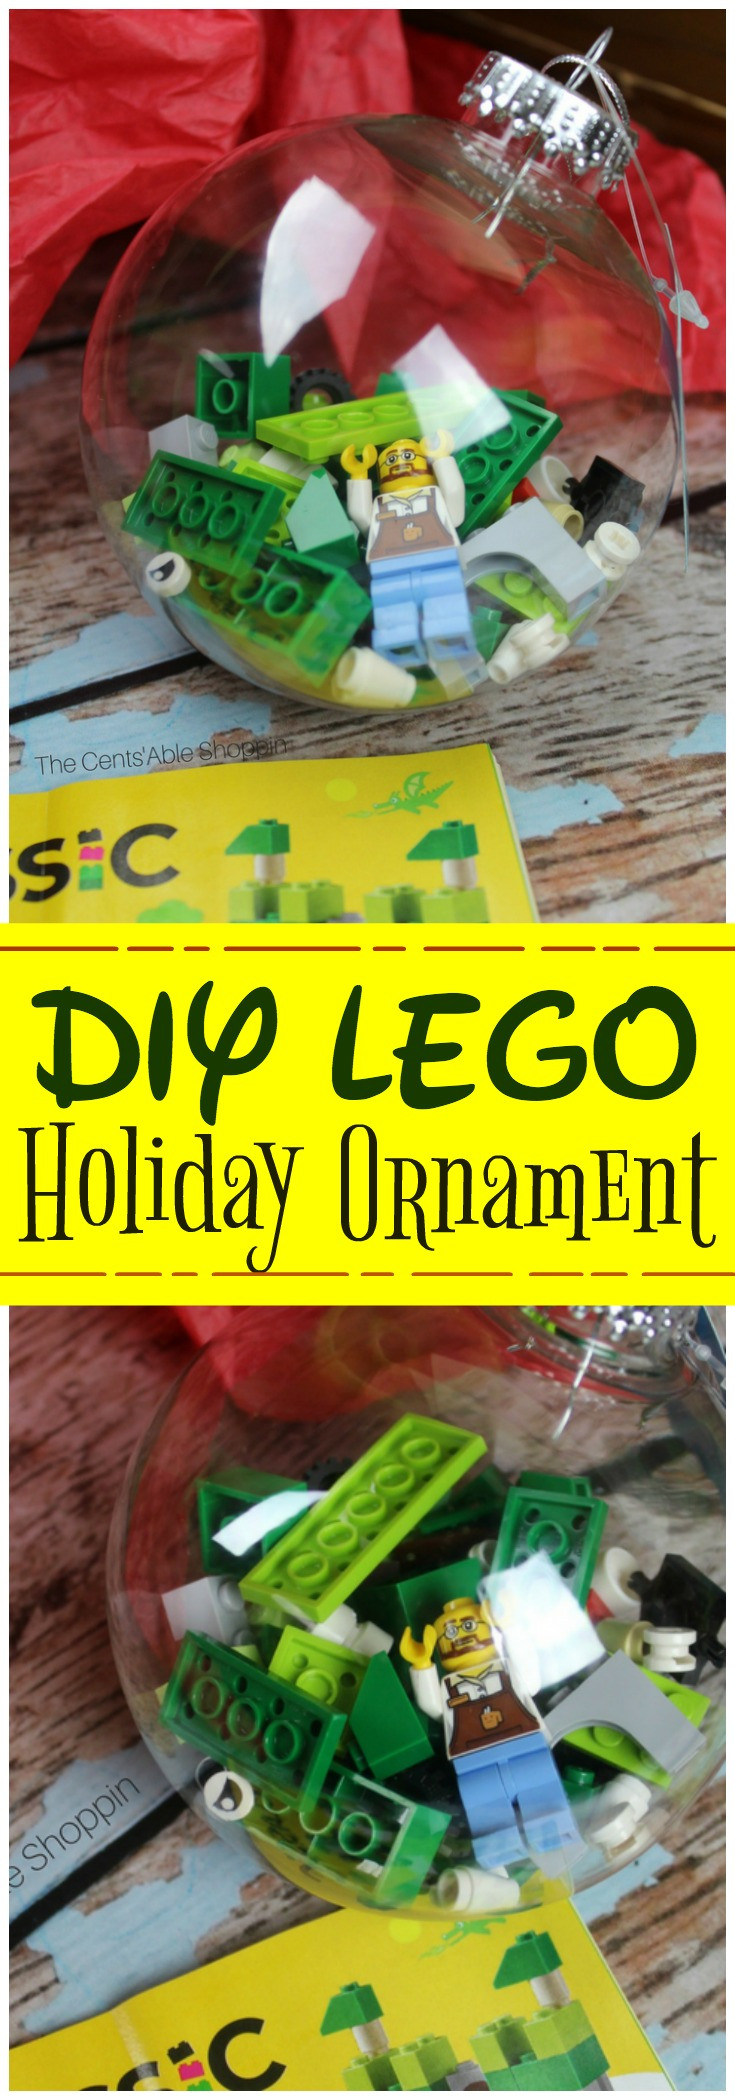 If your kids love LEGOS, they may love this DIY LEGO Holiday Ornament to try this year! The ornament is also a wonderful way to gift a classic LEGO set to cousins and friends! #LEGO #Christmas #ornament #holiday #DIYcrafts